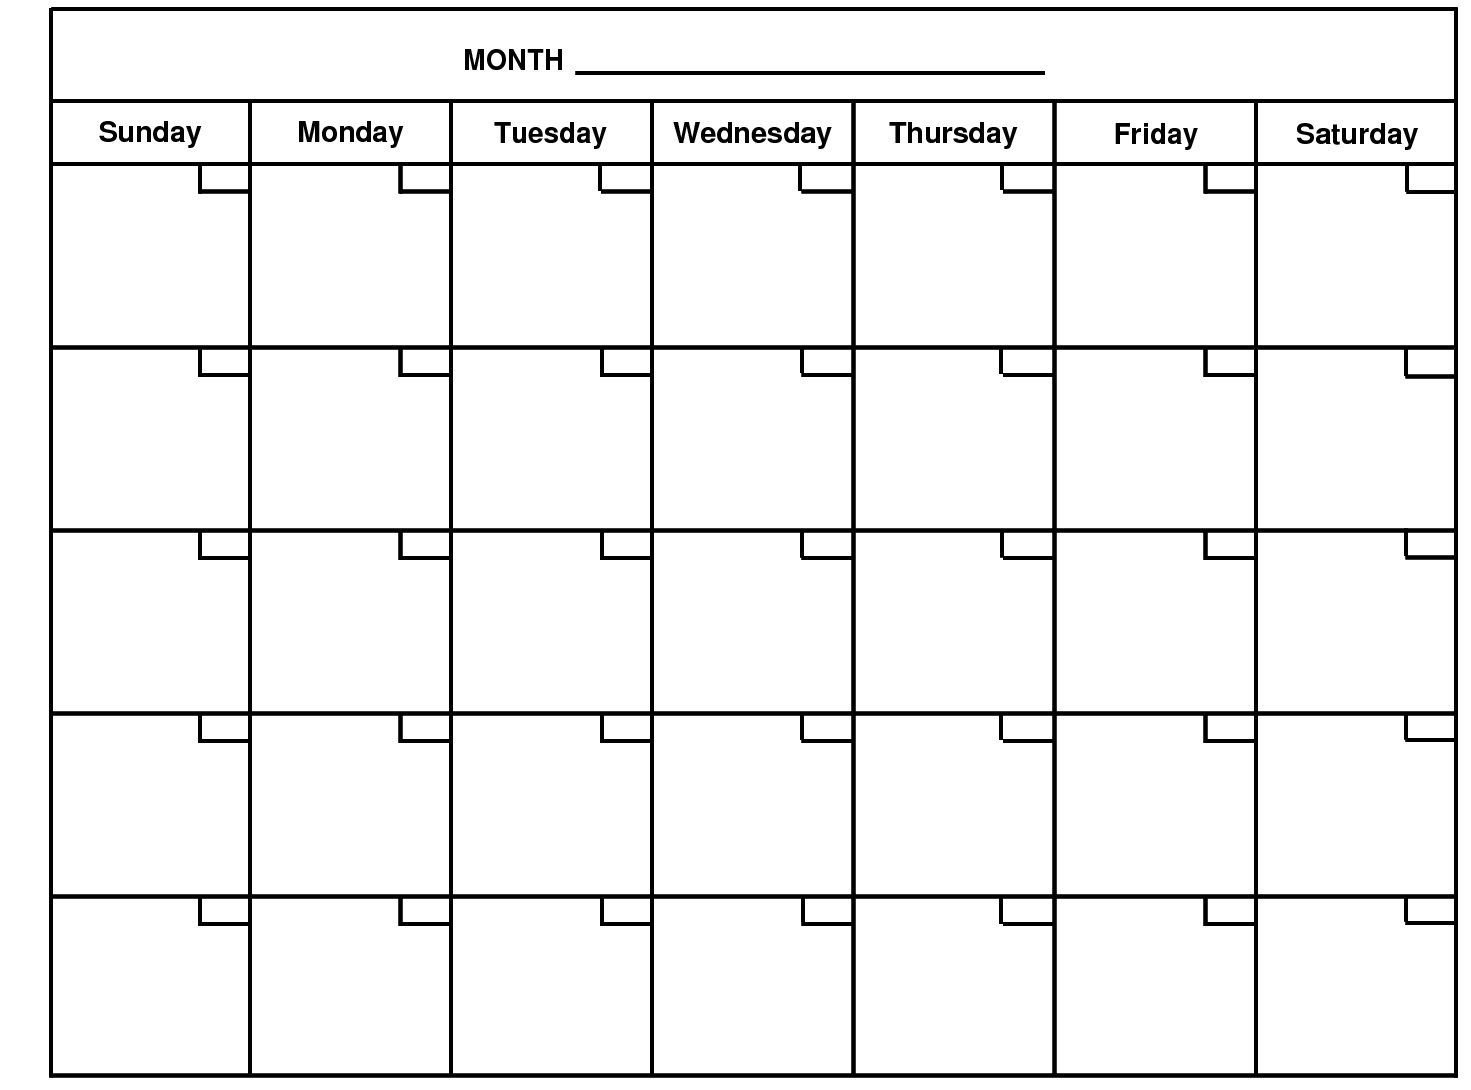 2020 Monthly Calendar Template Word – Google Search | Free 5 Ay Free Calendar